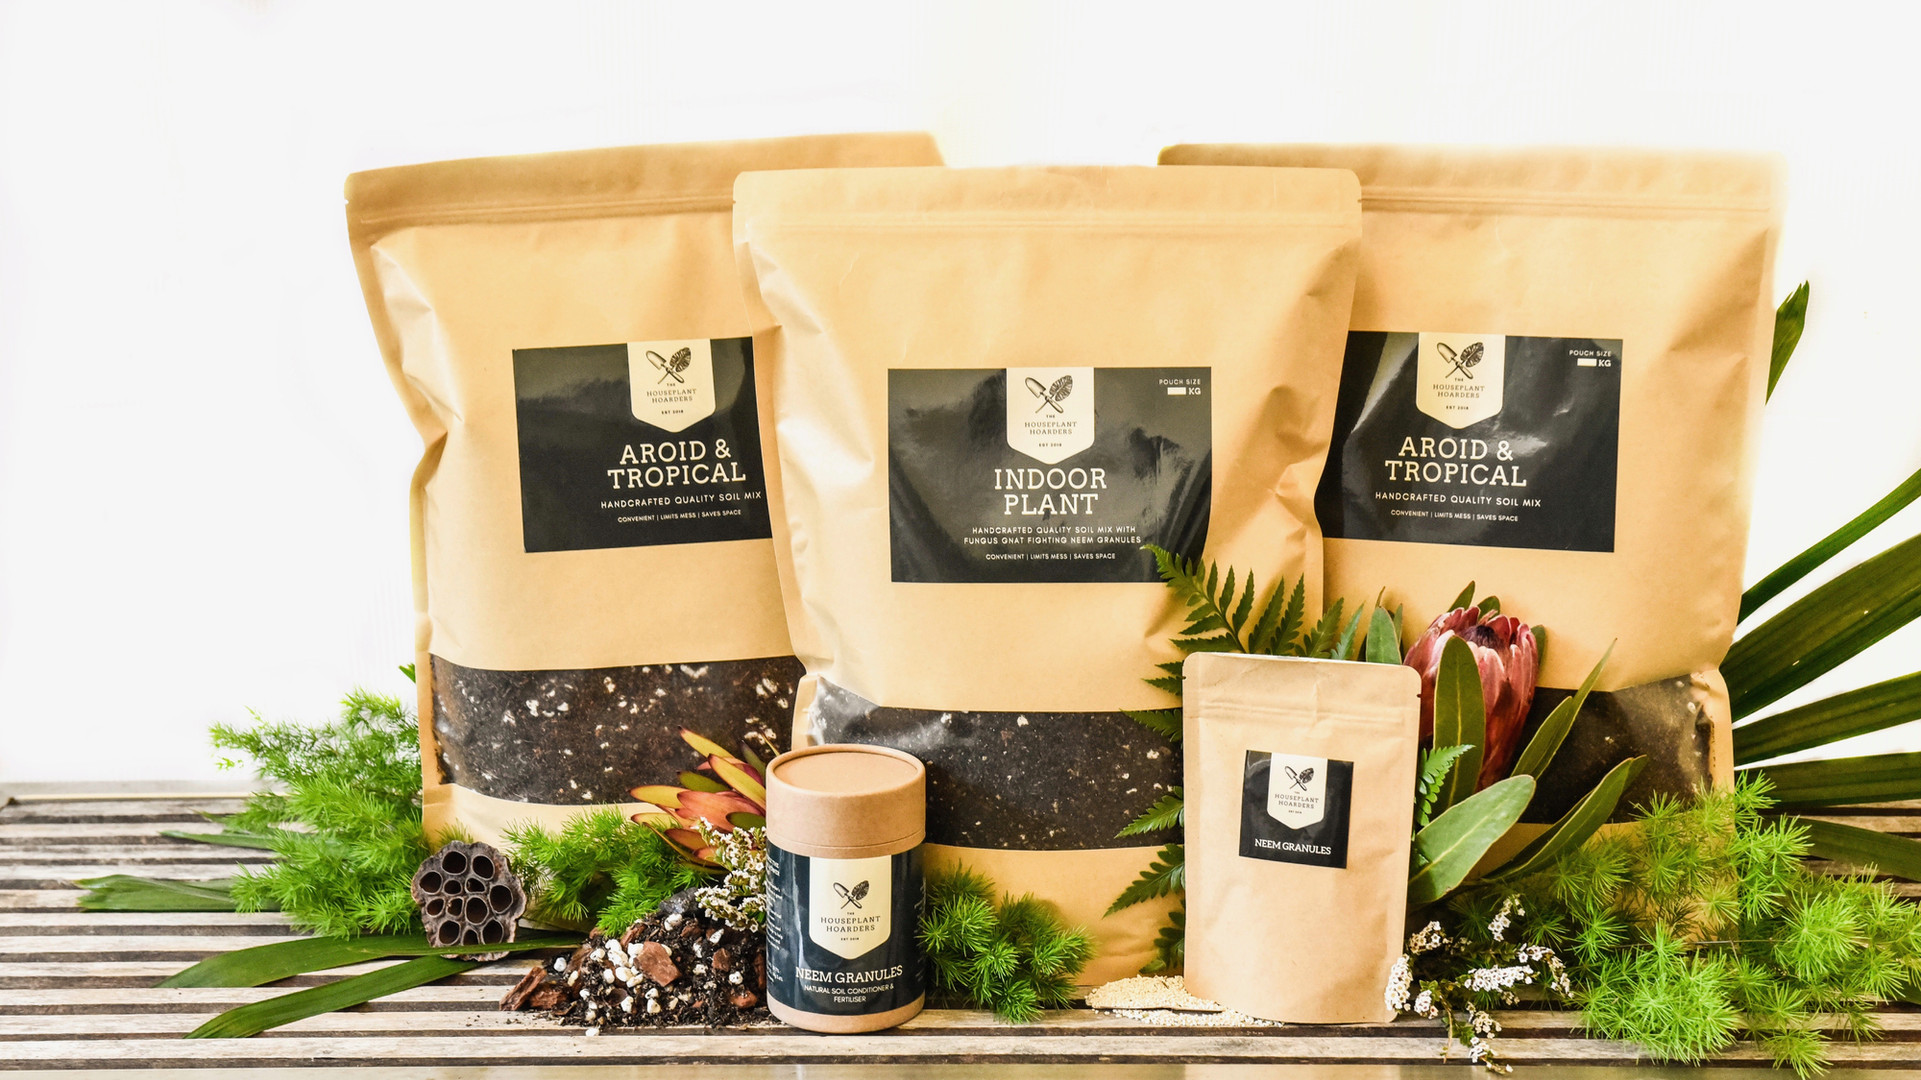 The Hoarders Plant Care Range